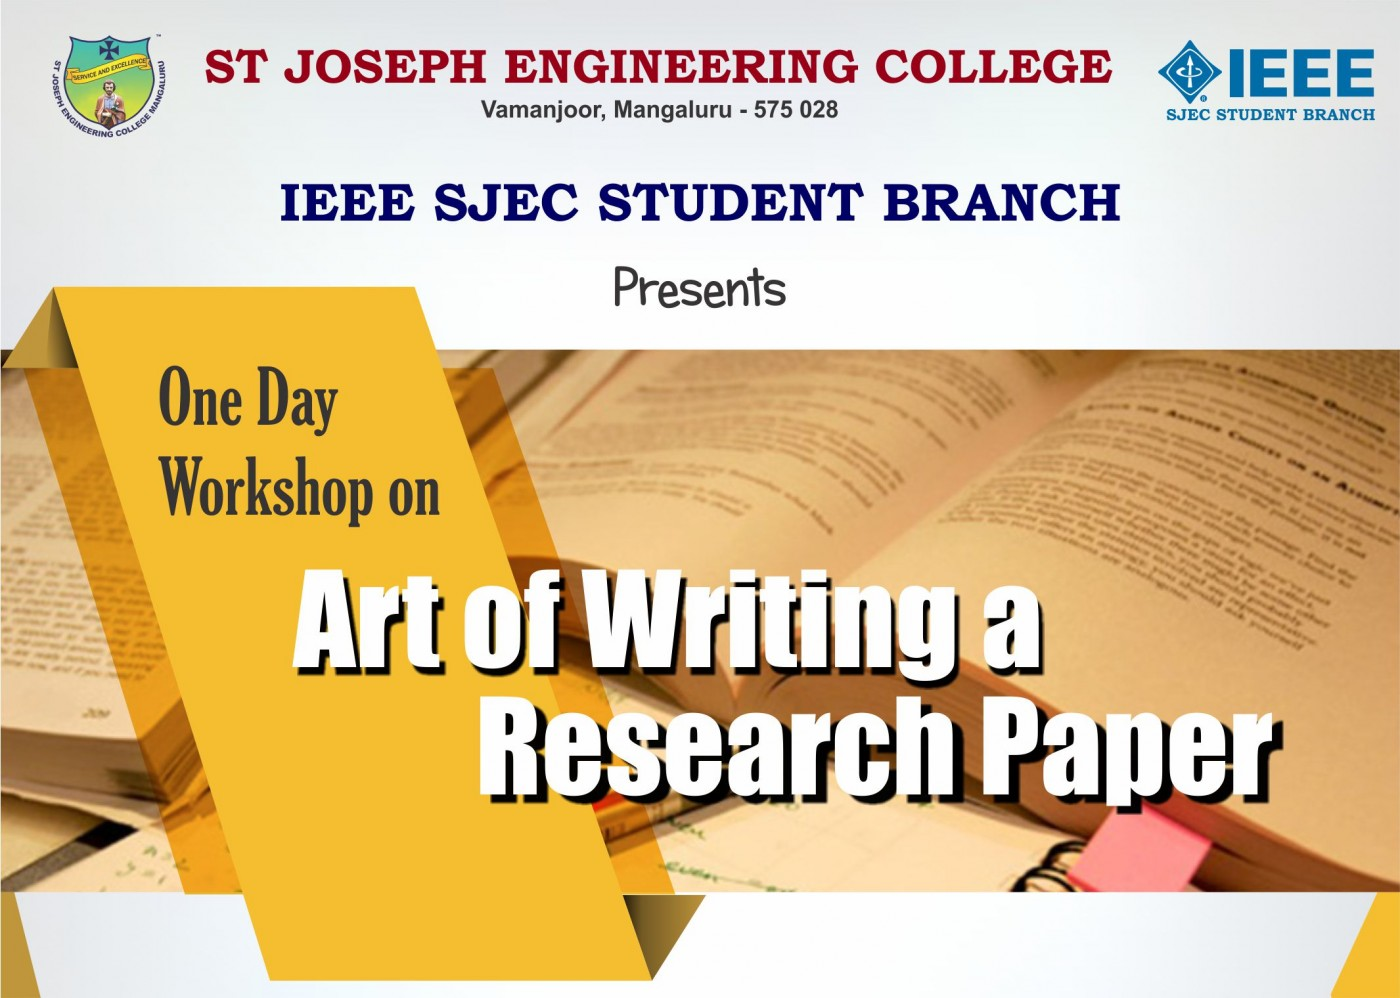 006 Workshop Banner Writing Of Research Fascinating Paper Sample Introduction Steps A Pdf 1400